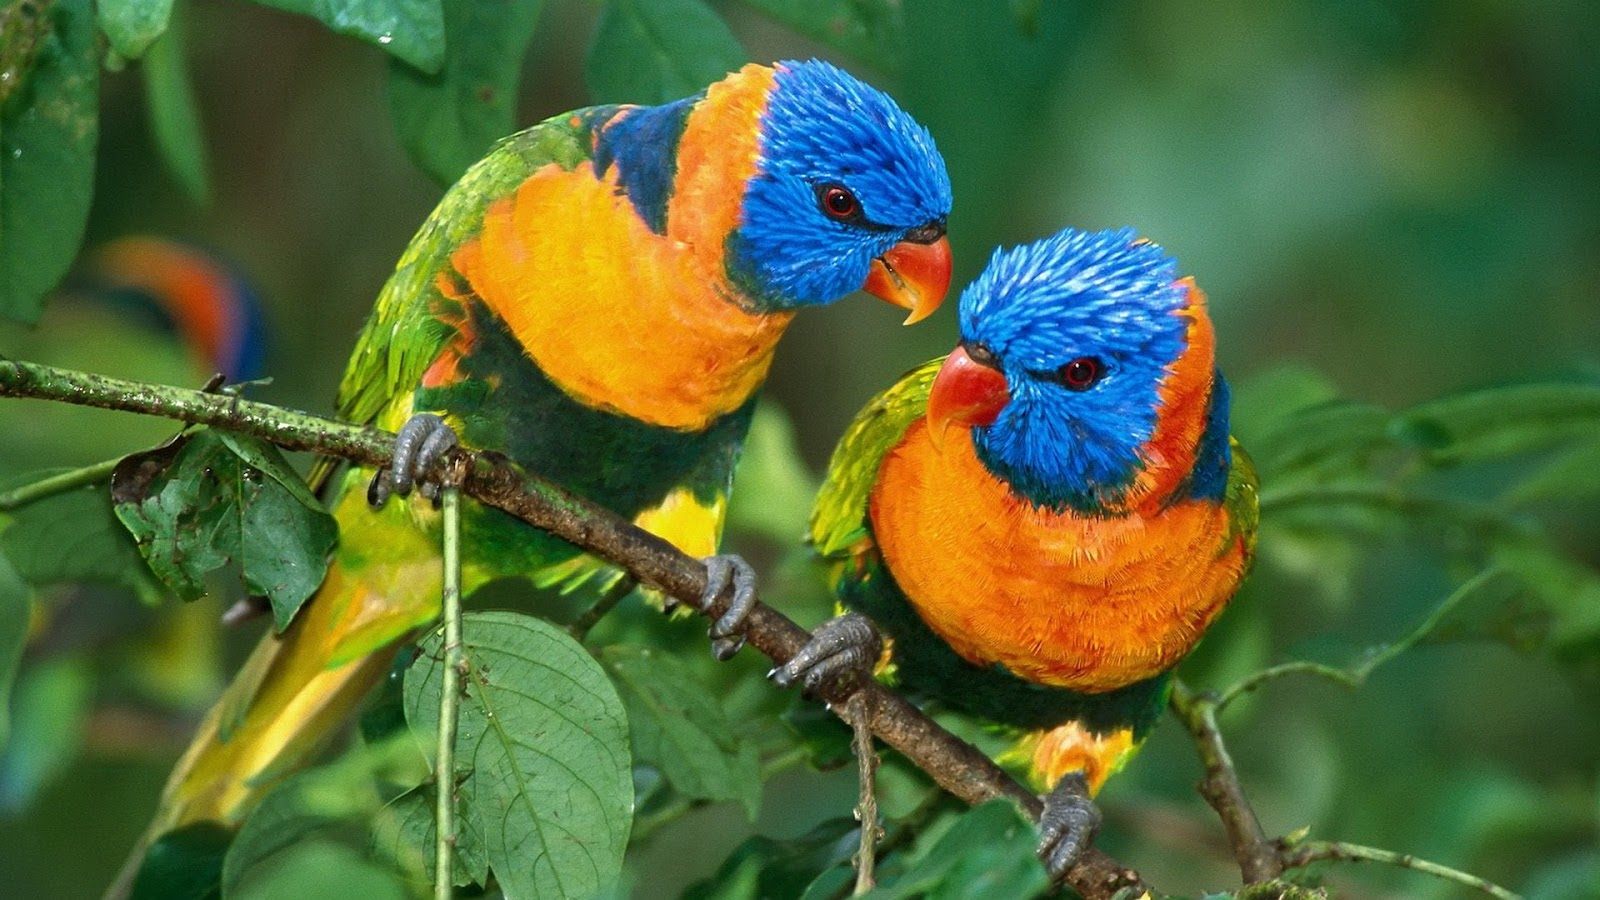 Hd wallpaper all - Free Download Latest Colorful Parrot Hd Desktop Wallpapers Background